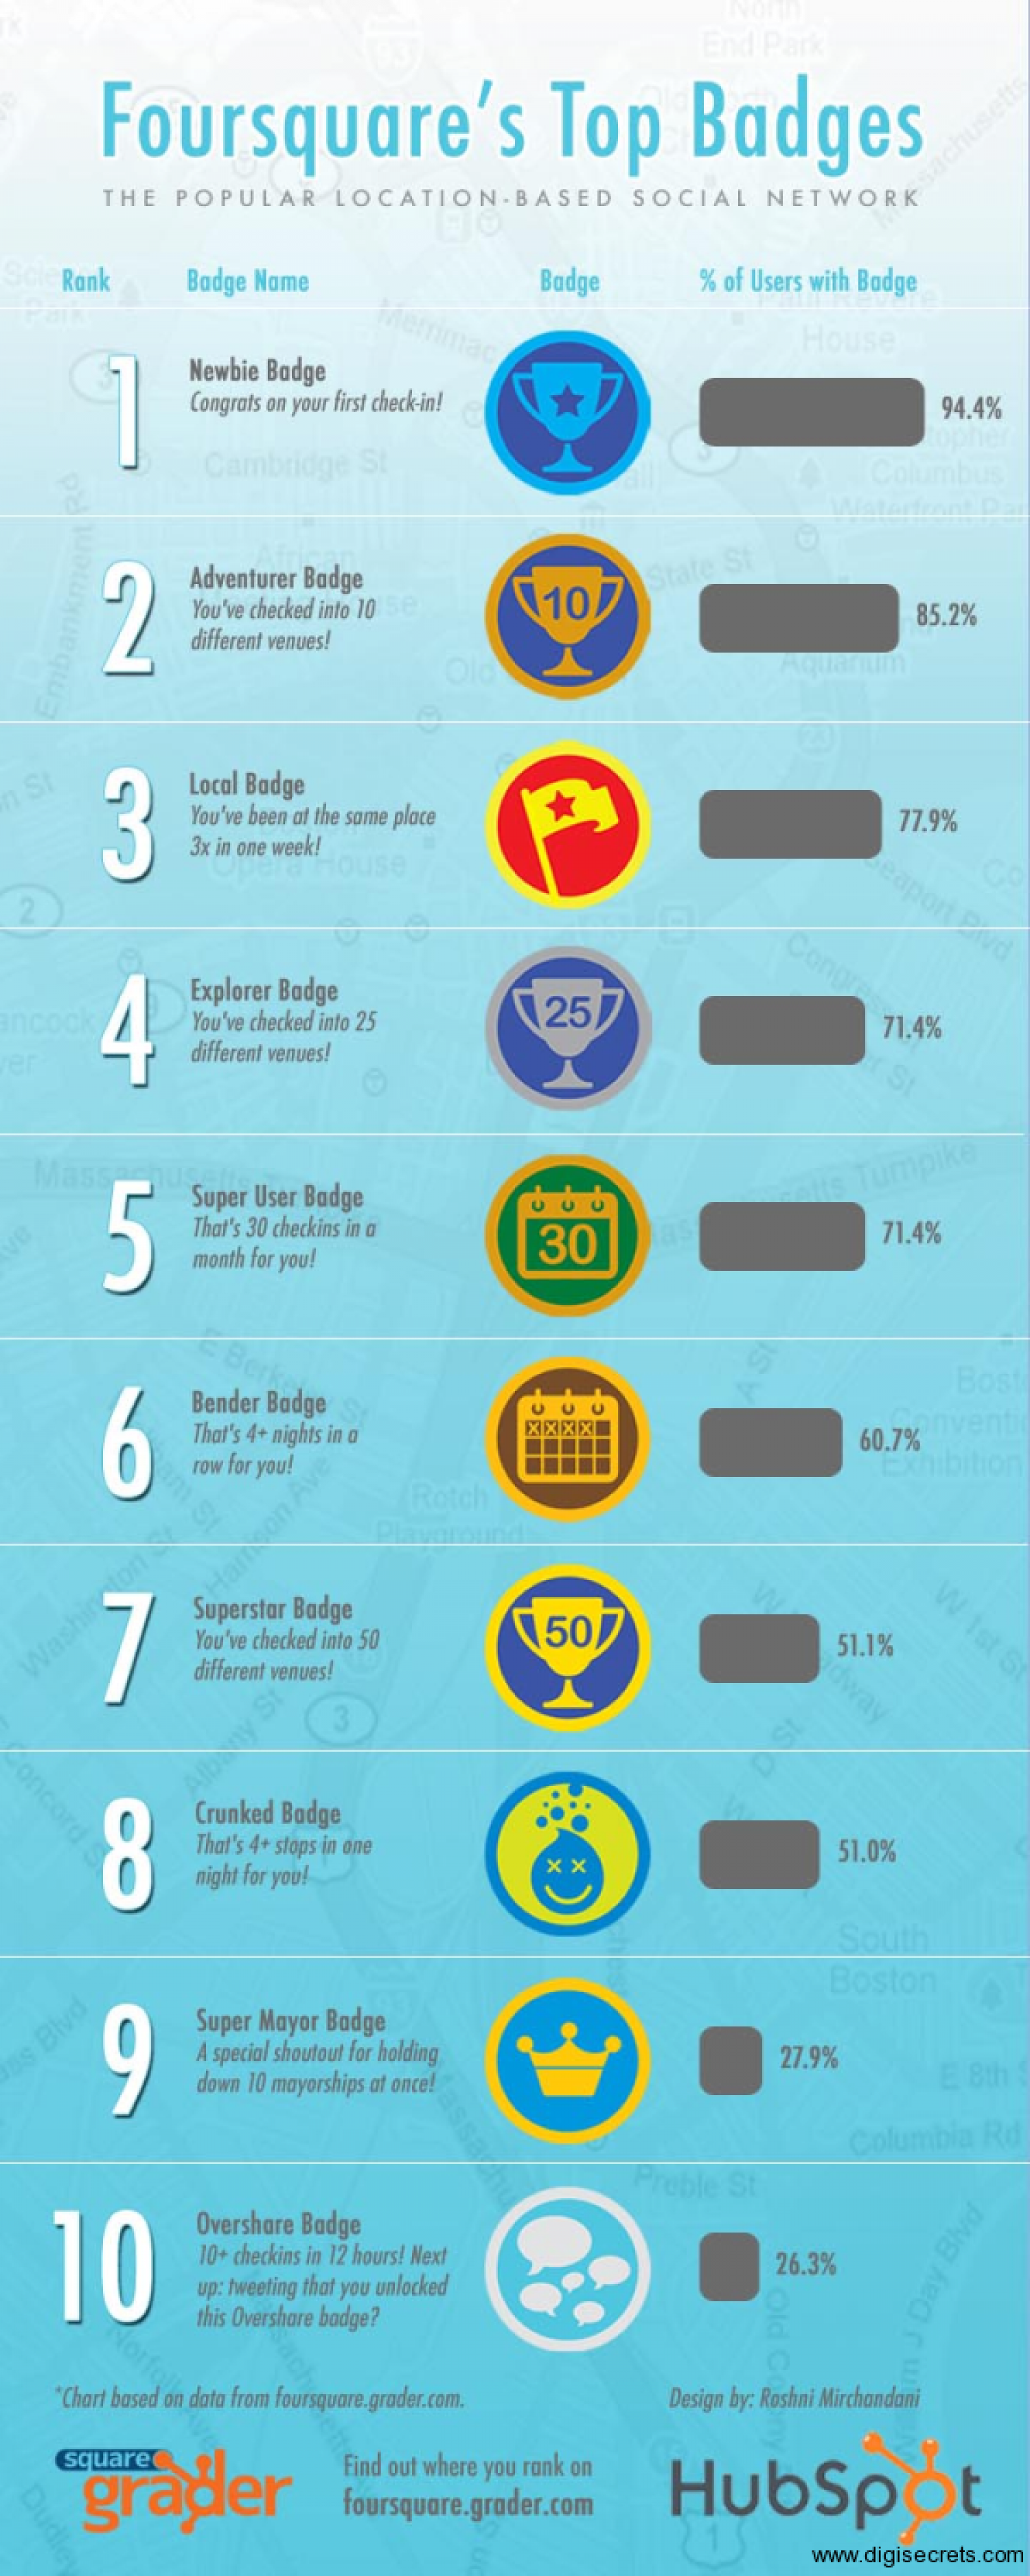 Guide to Foursquare Badges Infographic